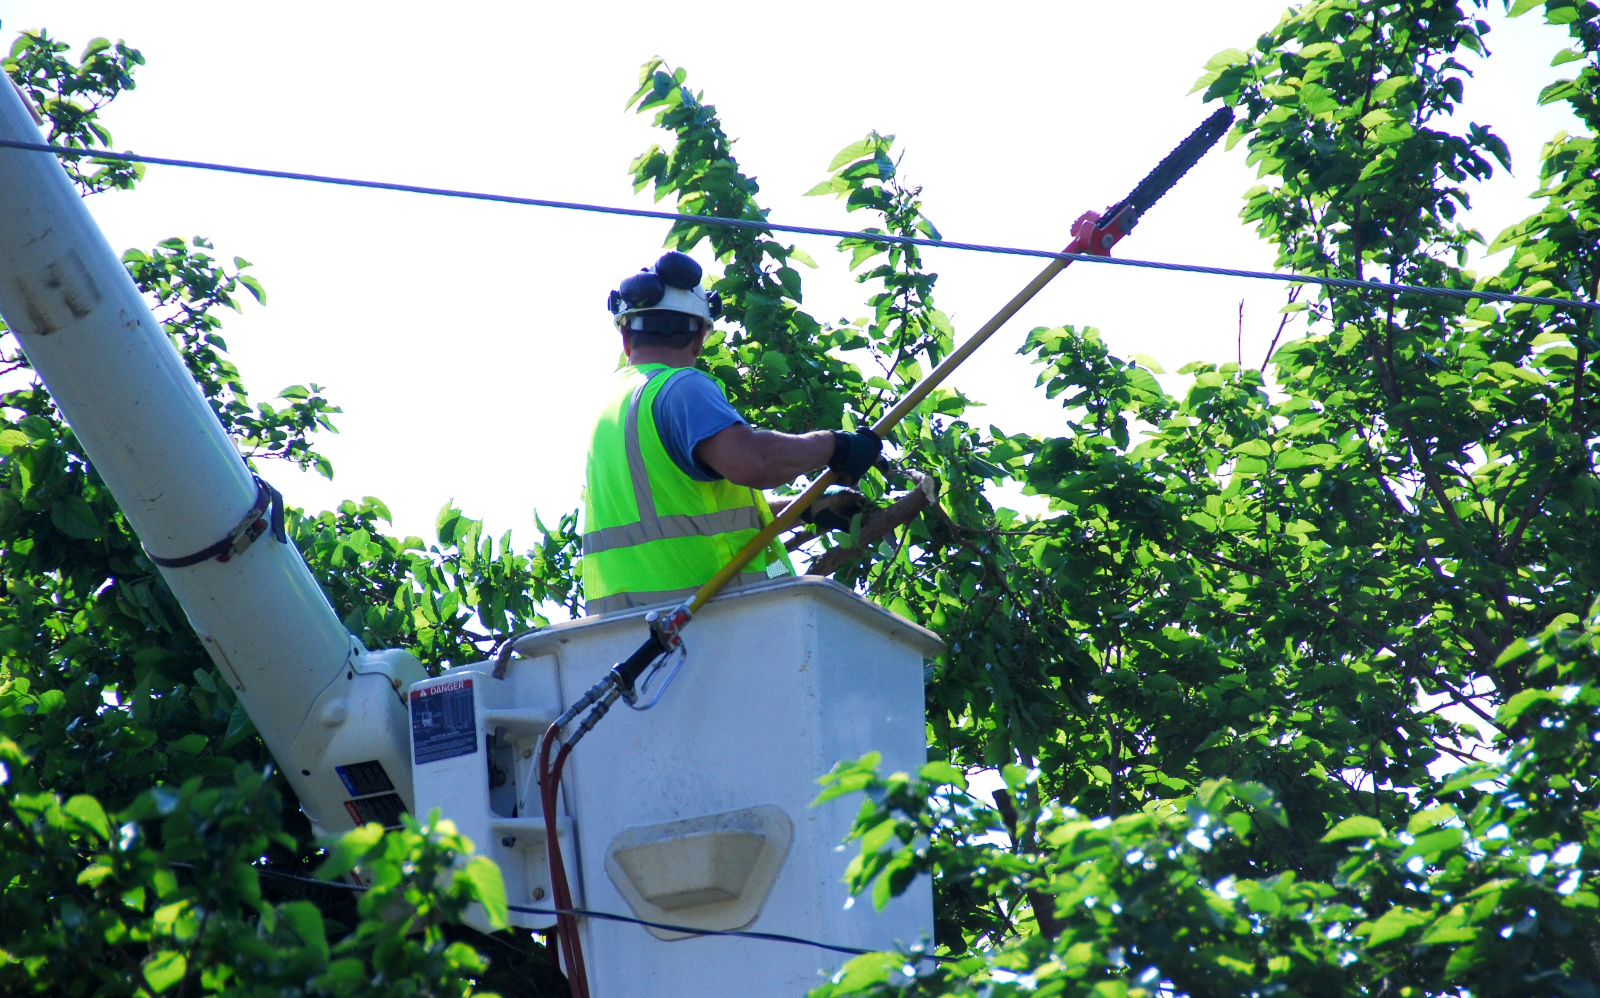 How trimming trees near power lines can kill